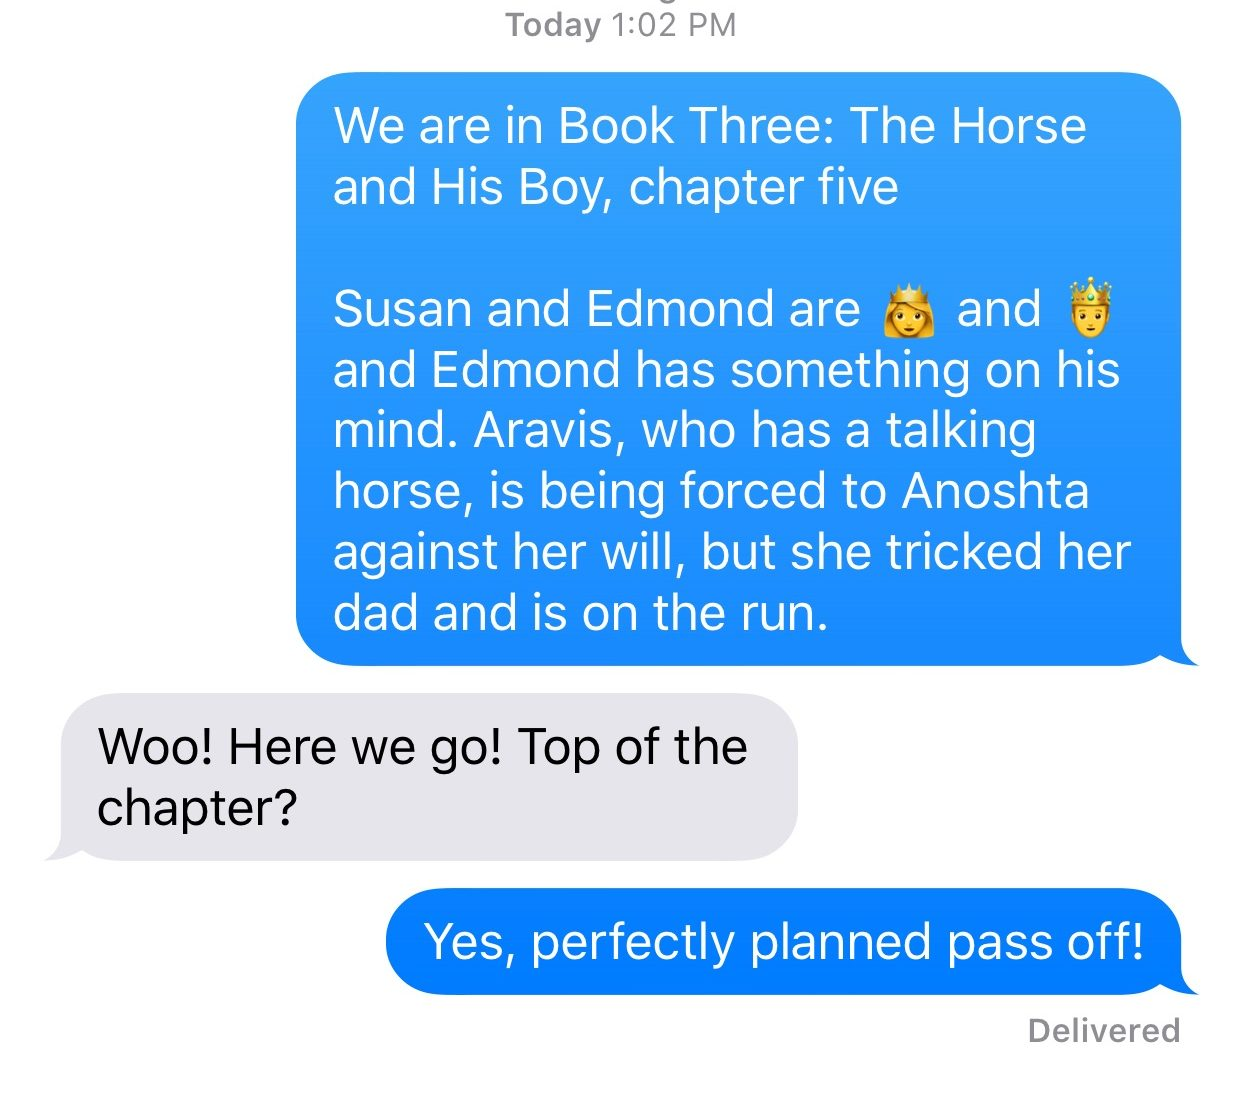 chronicles of Narnia summary, the lion the witch and the wardrobe summary, a horse and his boy summary, summer solstice